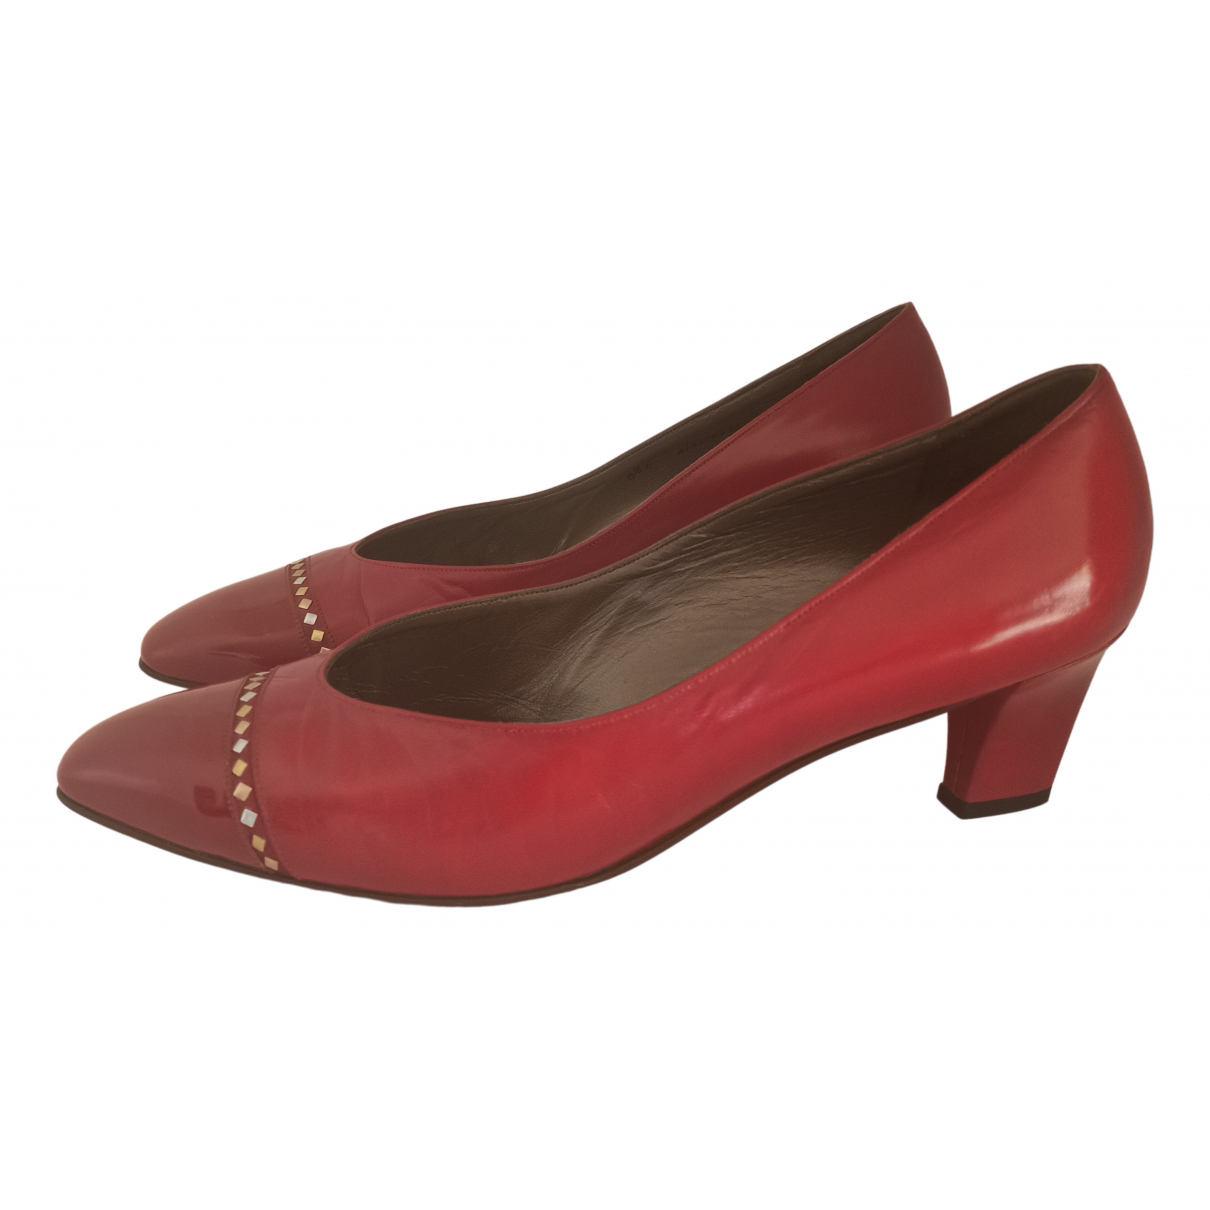 Bally N Red Leather Heels for Women 40 EU